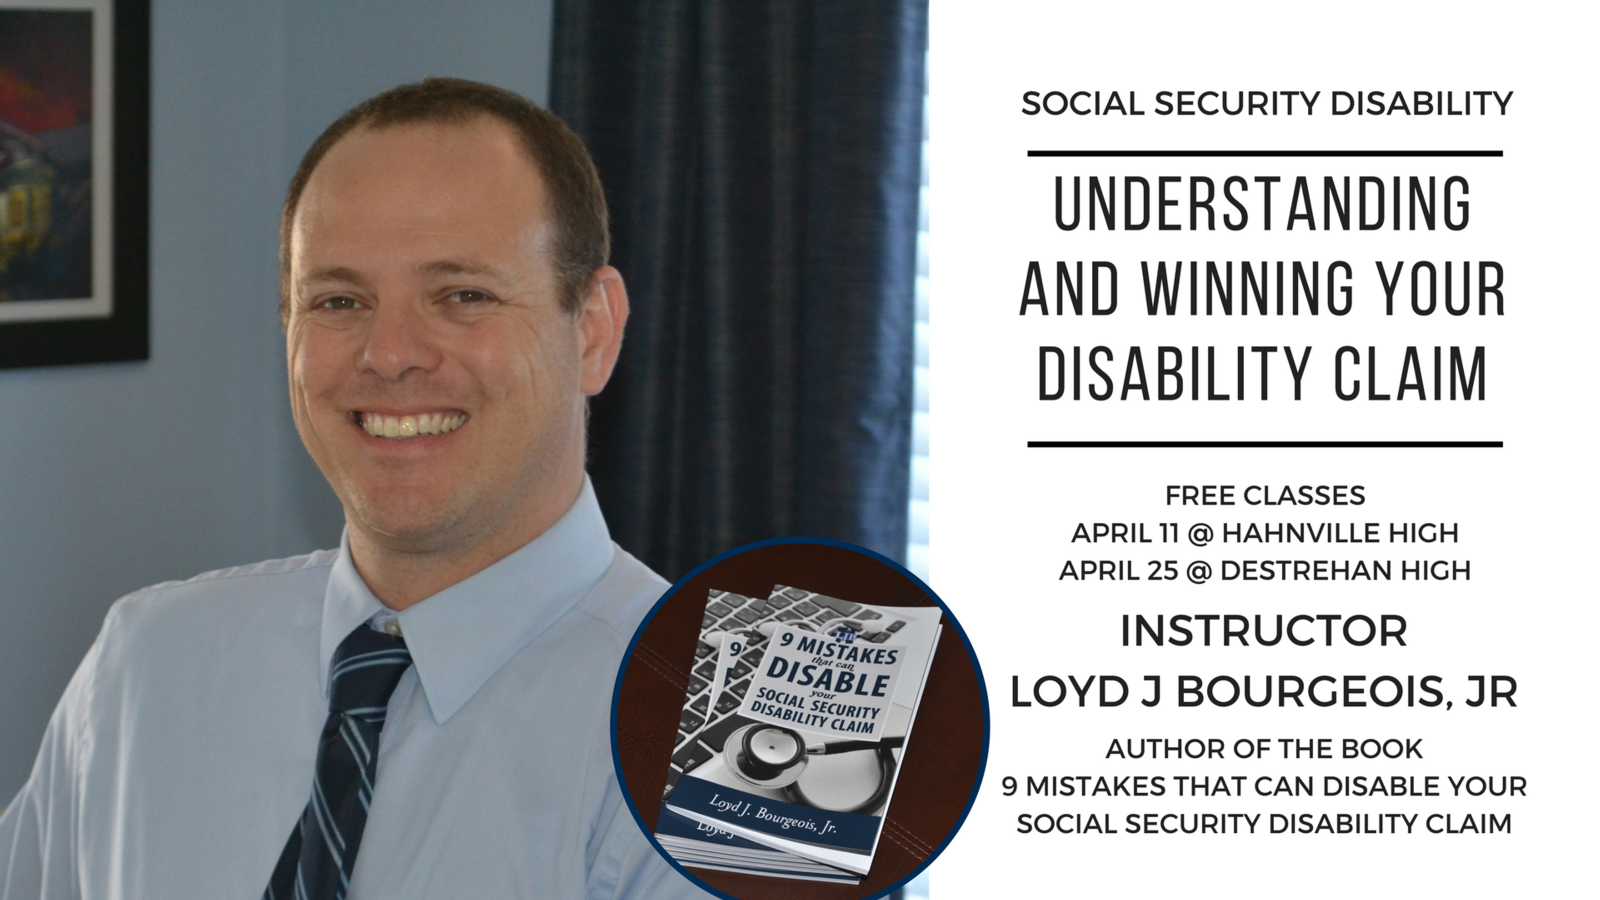 Social Security Disability - Understanding and Winning Your Disability Claim